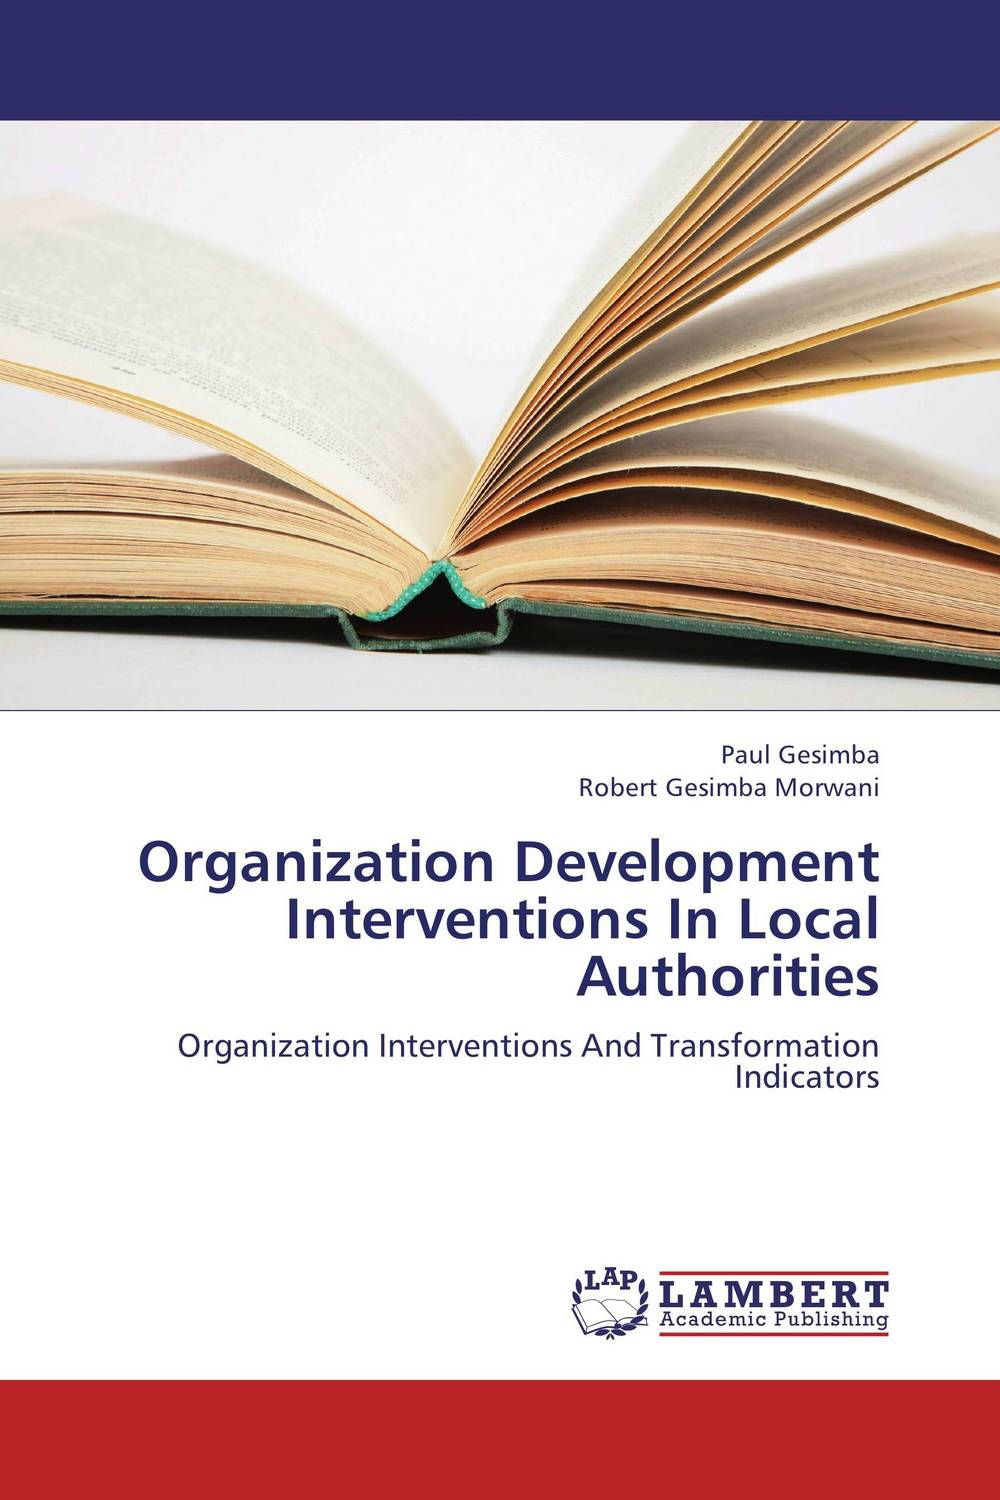 Organization Development Interventions In Local Authorities franke bibliotheca cardiologica ballistocardiogra phy research and computer diagnosis